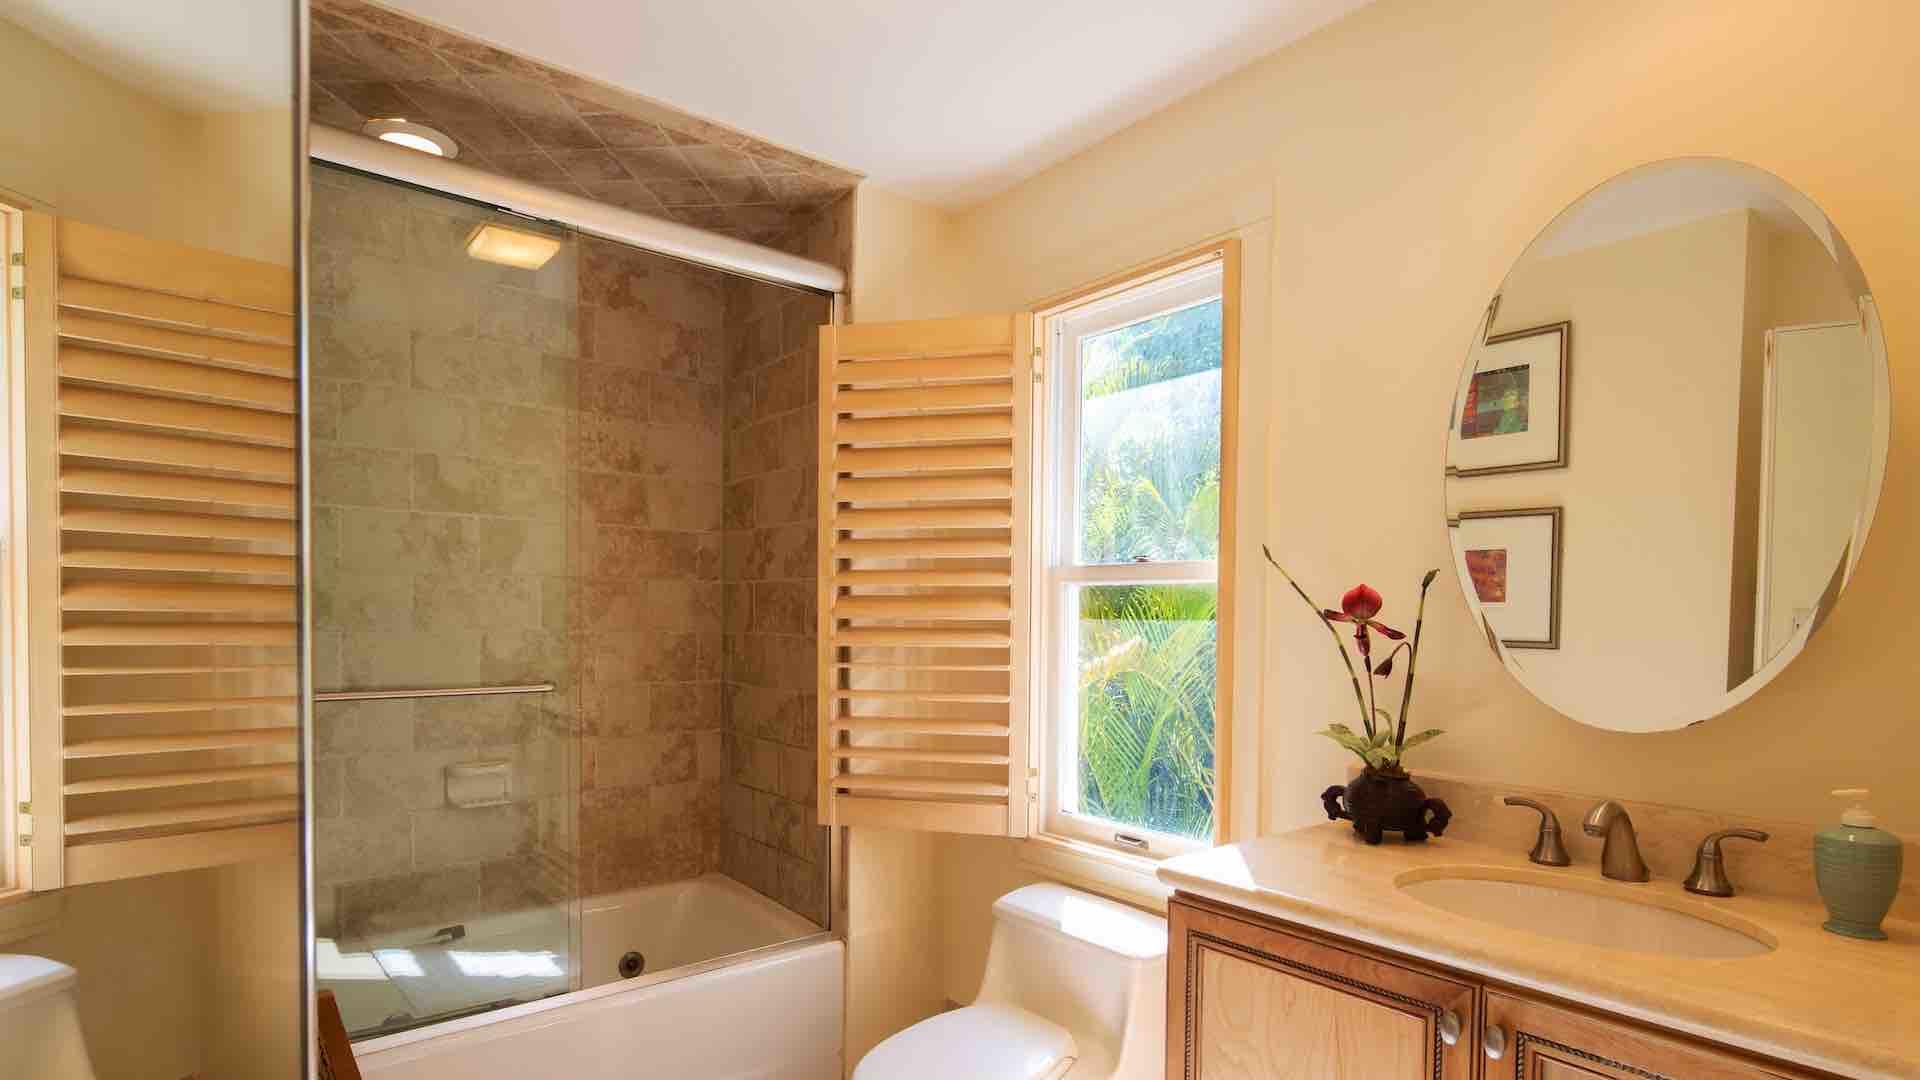 The master bathroom has a shower and tub combo...